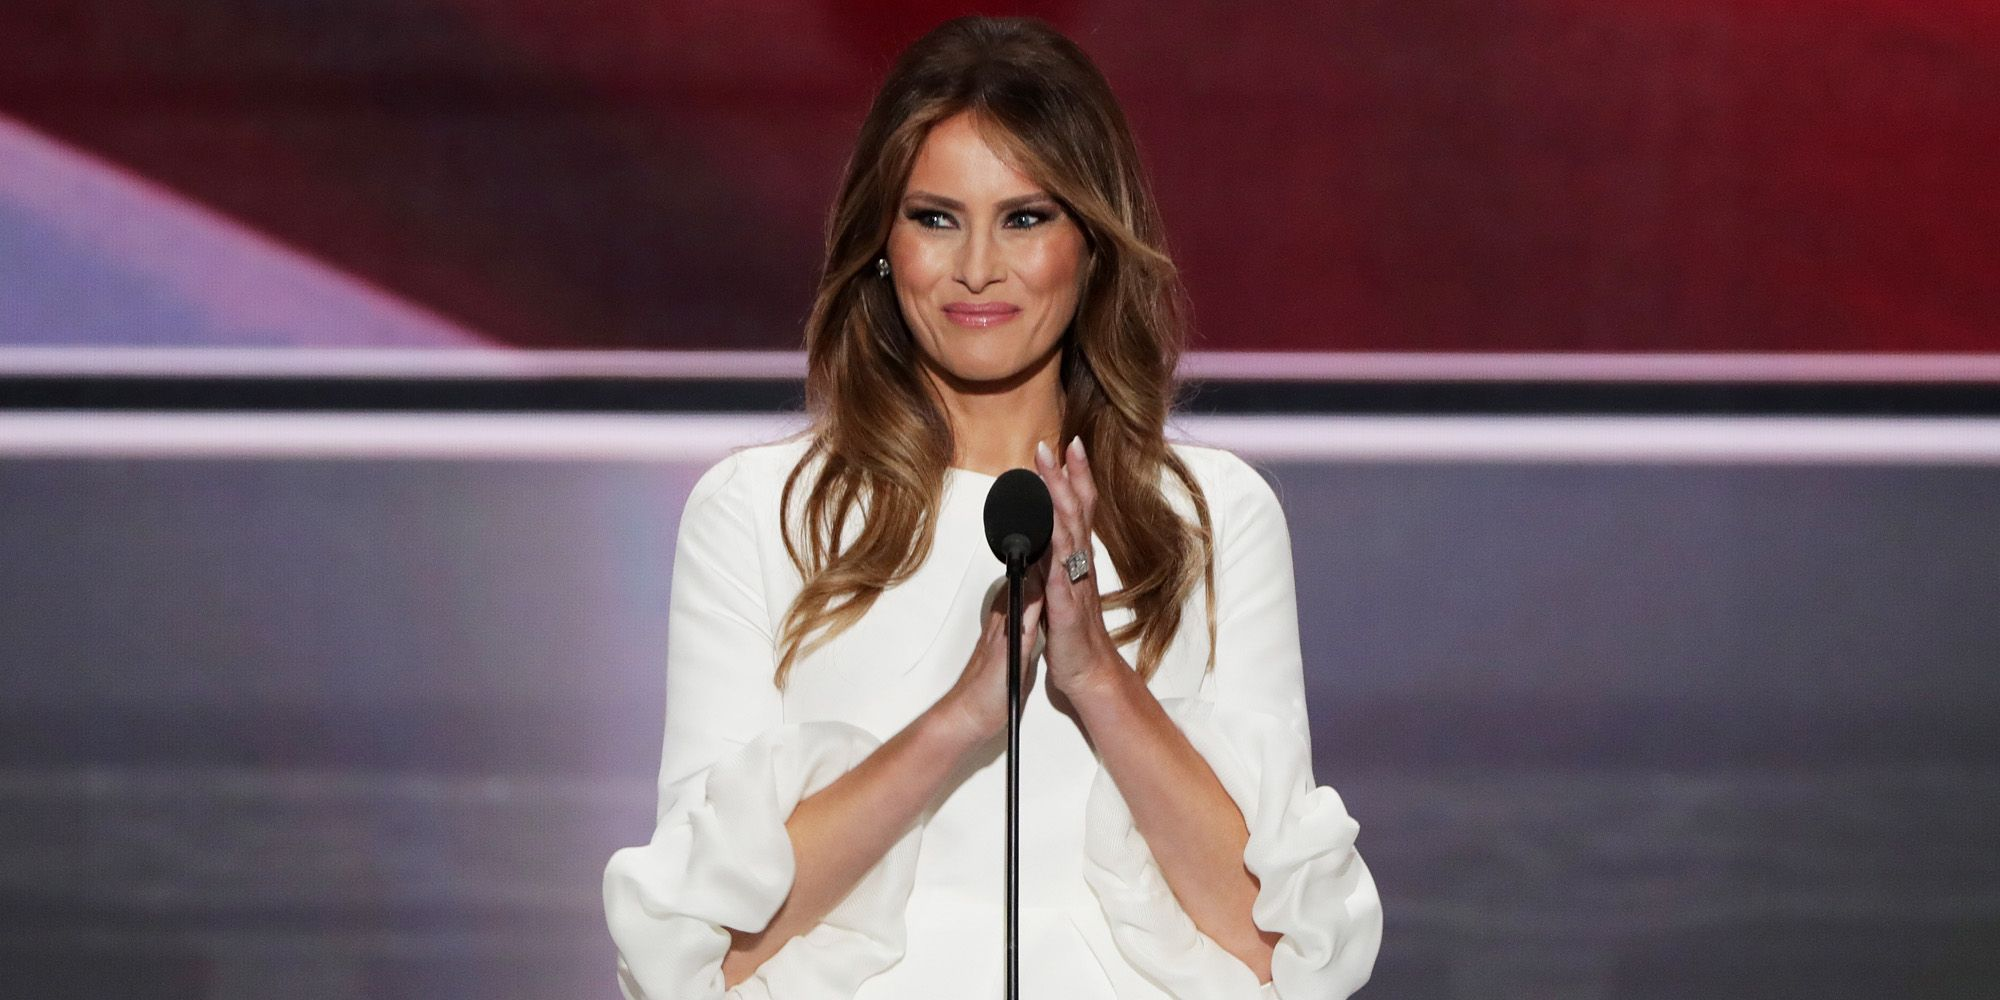 5 Changes You Can Expect When Melania Trump Moves Into the White House